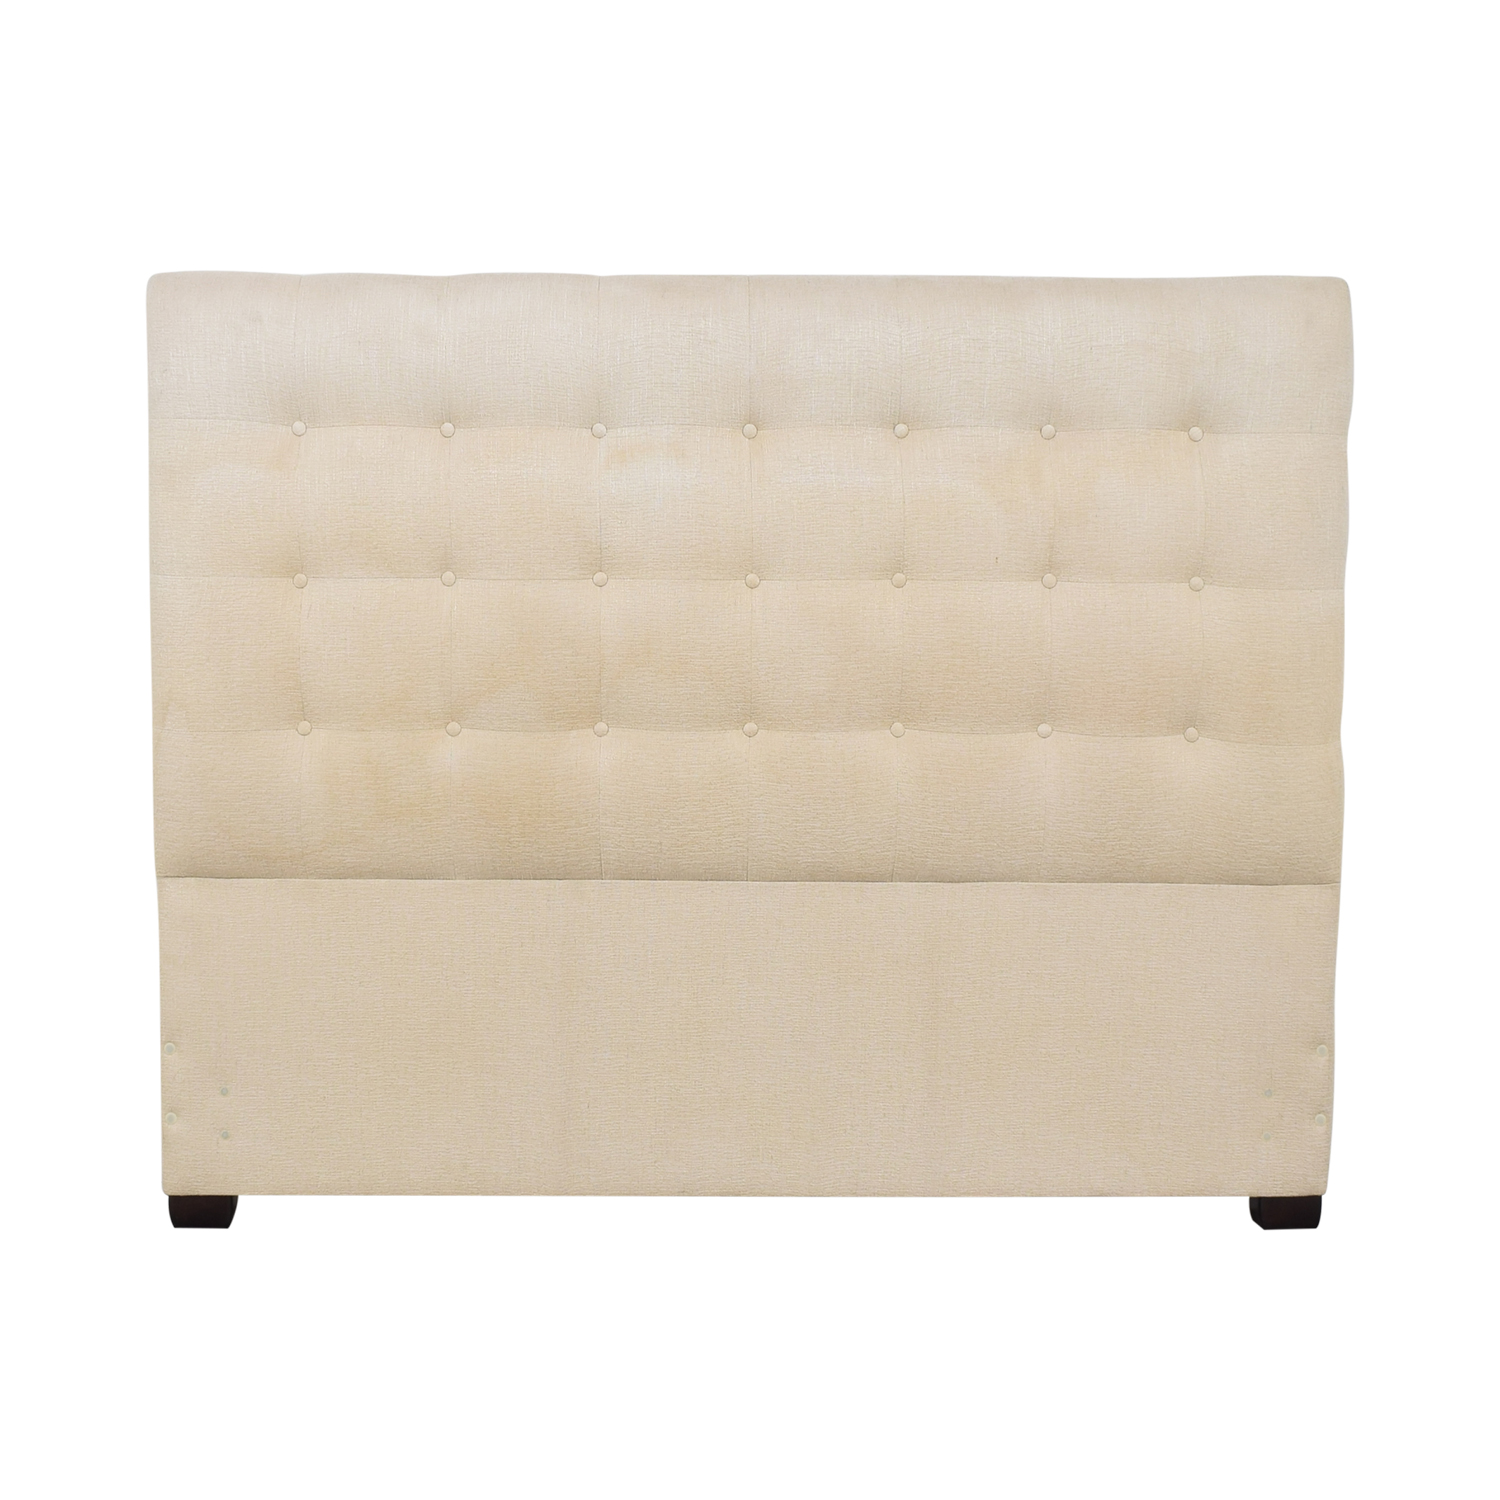 Bernhardt Bernhardt Avery Tufted Queen Headboard used